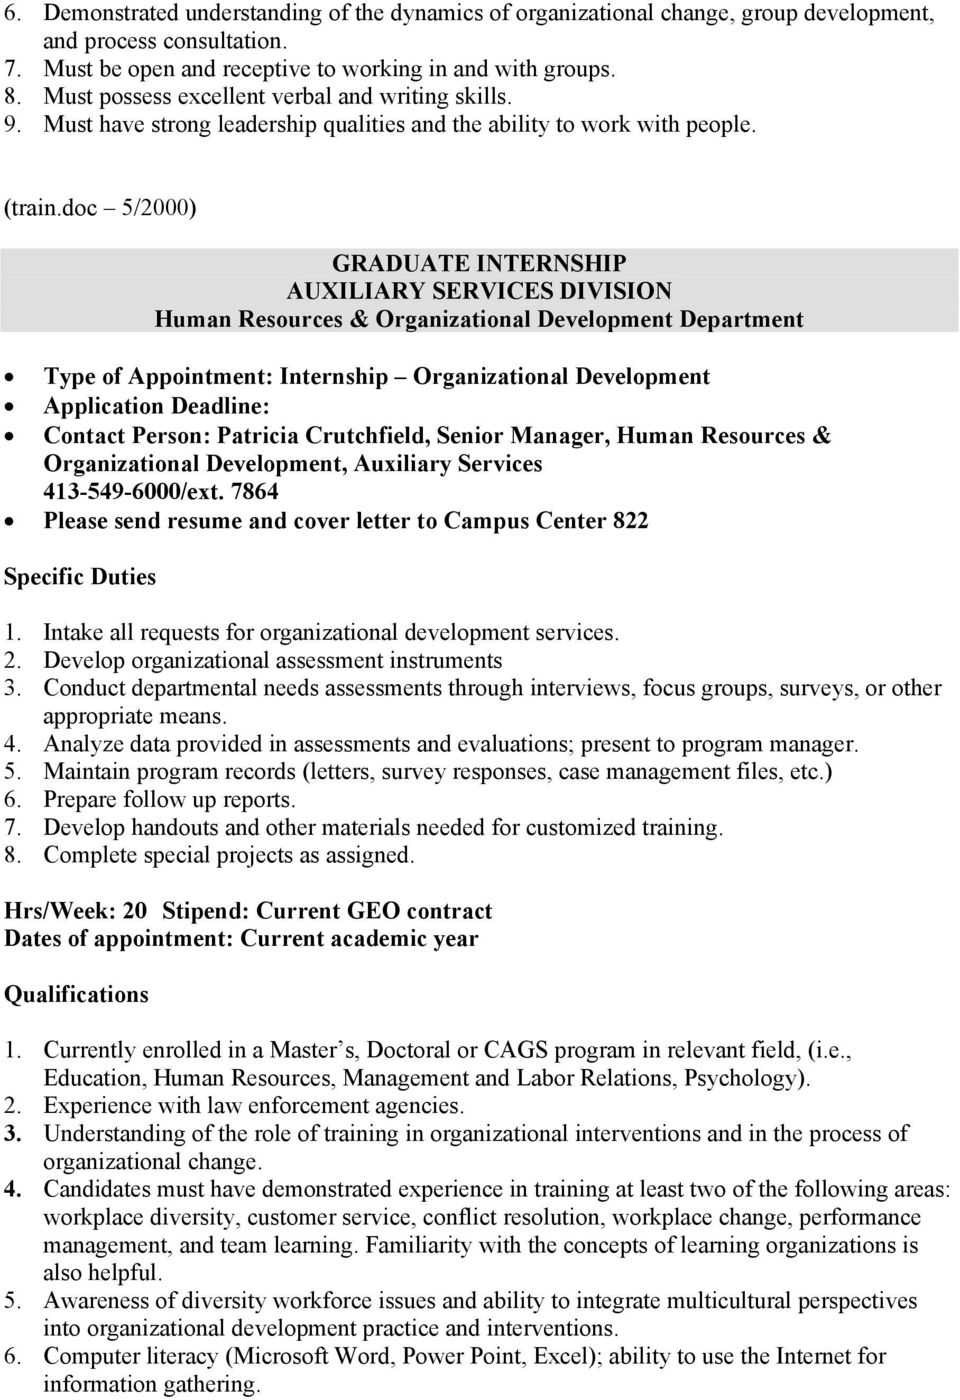 doc 5/2000) GRADUATE INTERNSHIP AUXILIARY SERVICES DIVISION Human Resources & Organizational Development Department Type of Appointment: Internship Organizational Development Application Deadline: